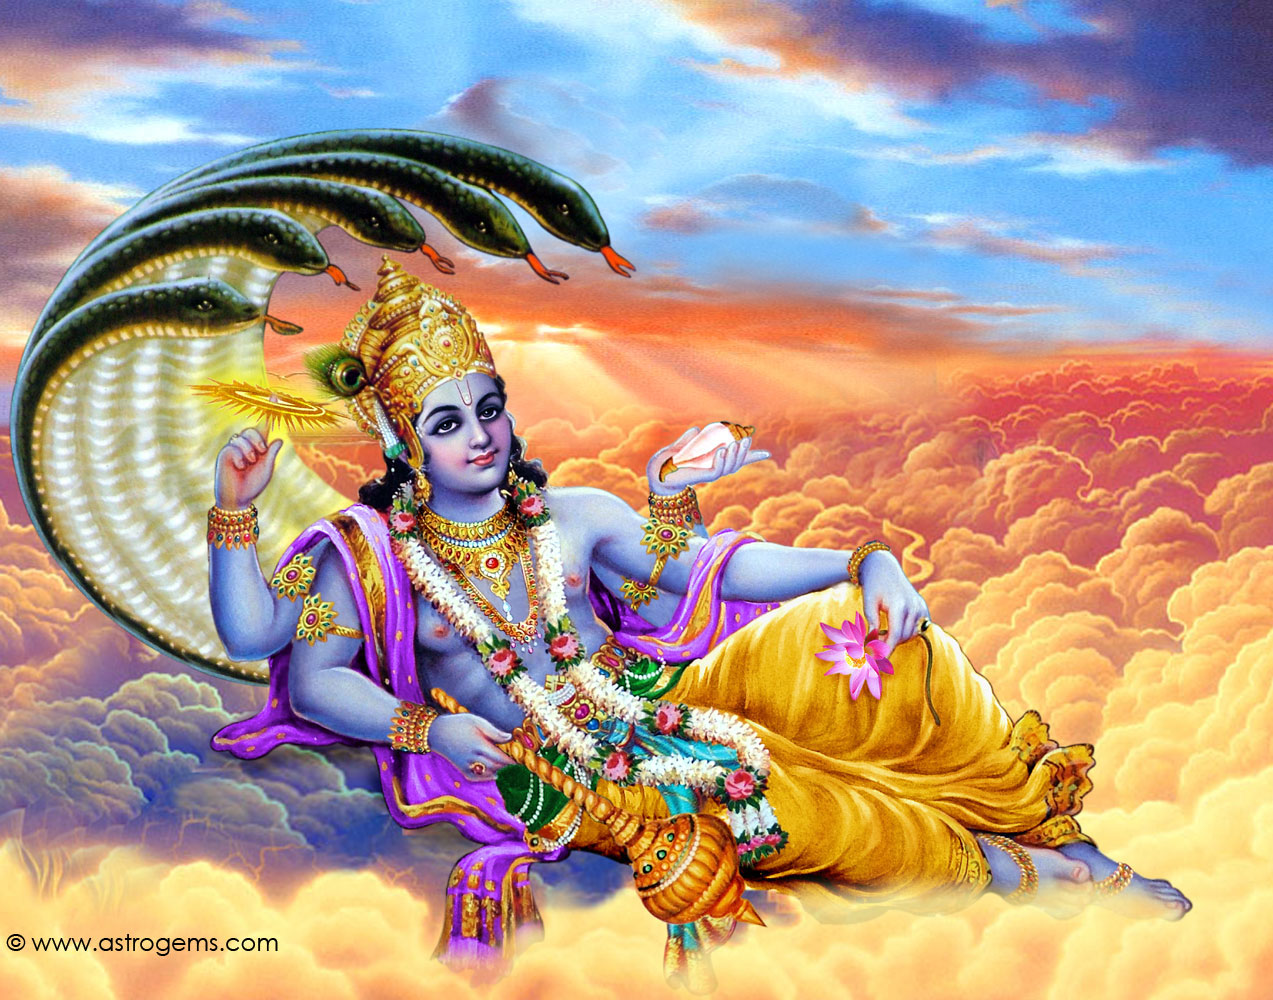 vishnu 1 Lord vishnu - he has four arms and is male: the four arms indicate his all- powerful and all-pervasive nature his physical existence is.